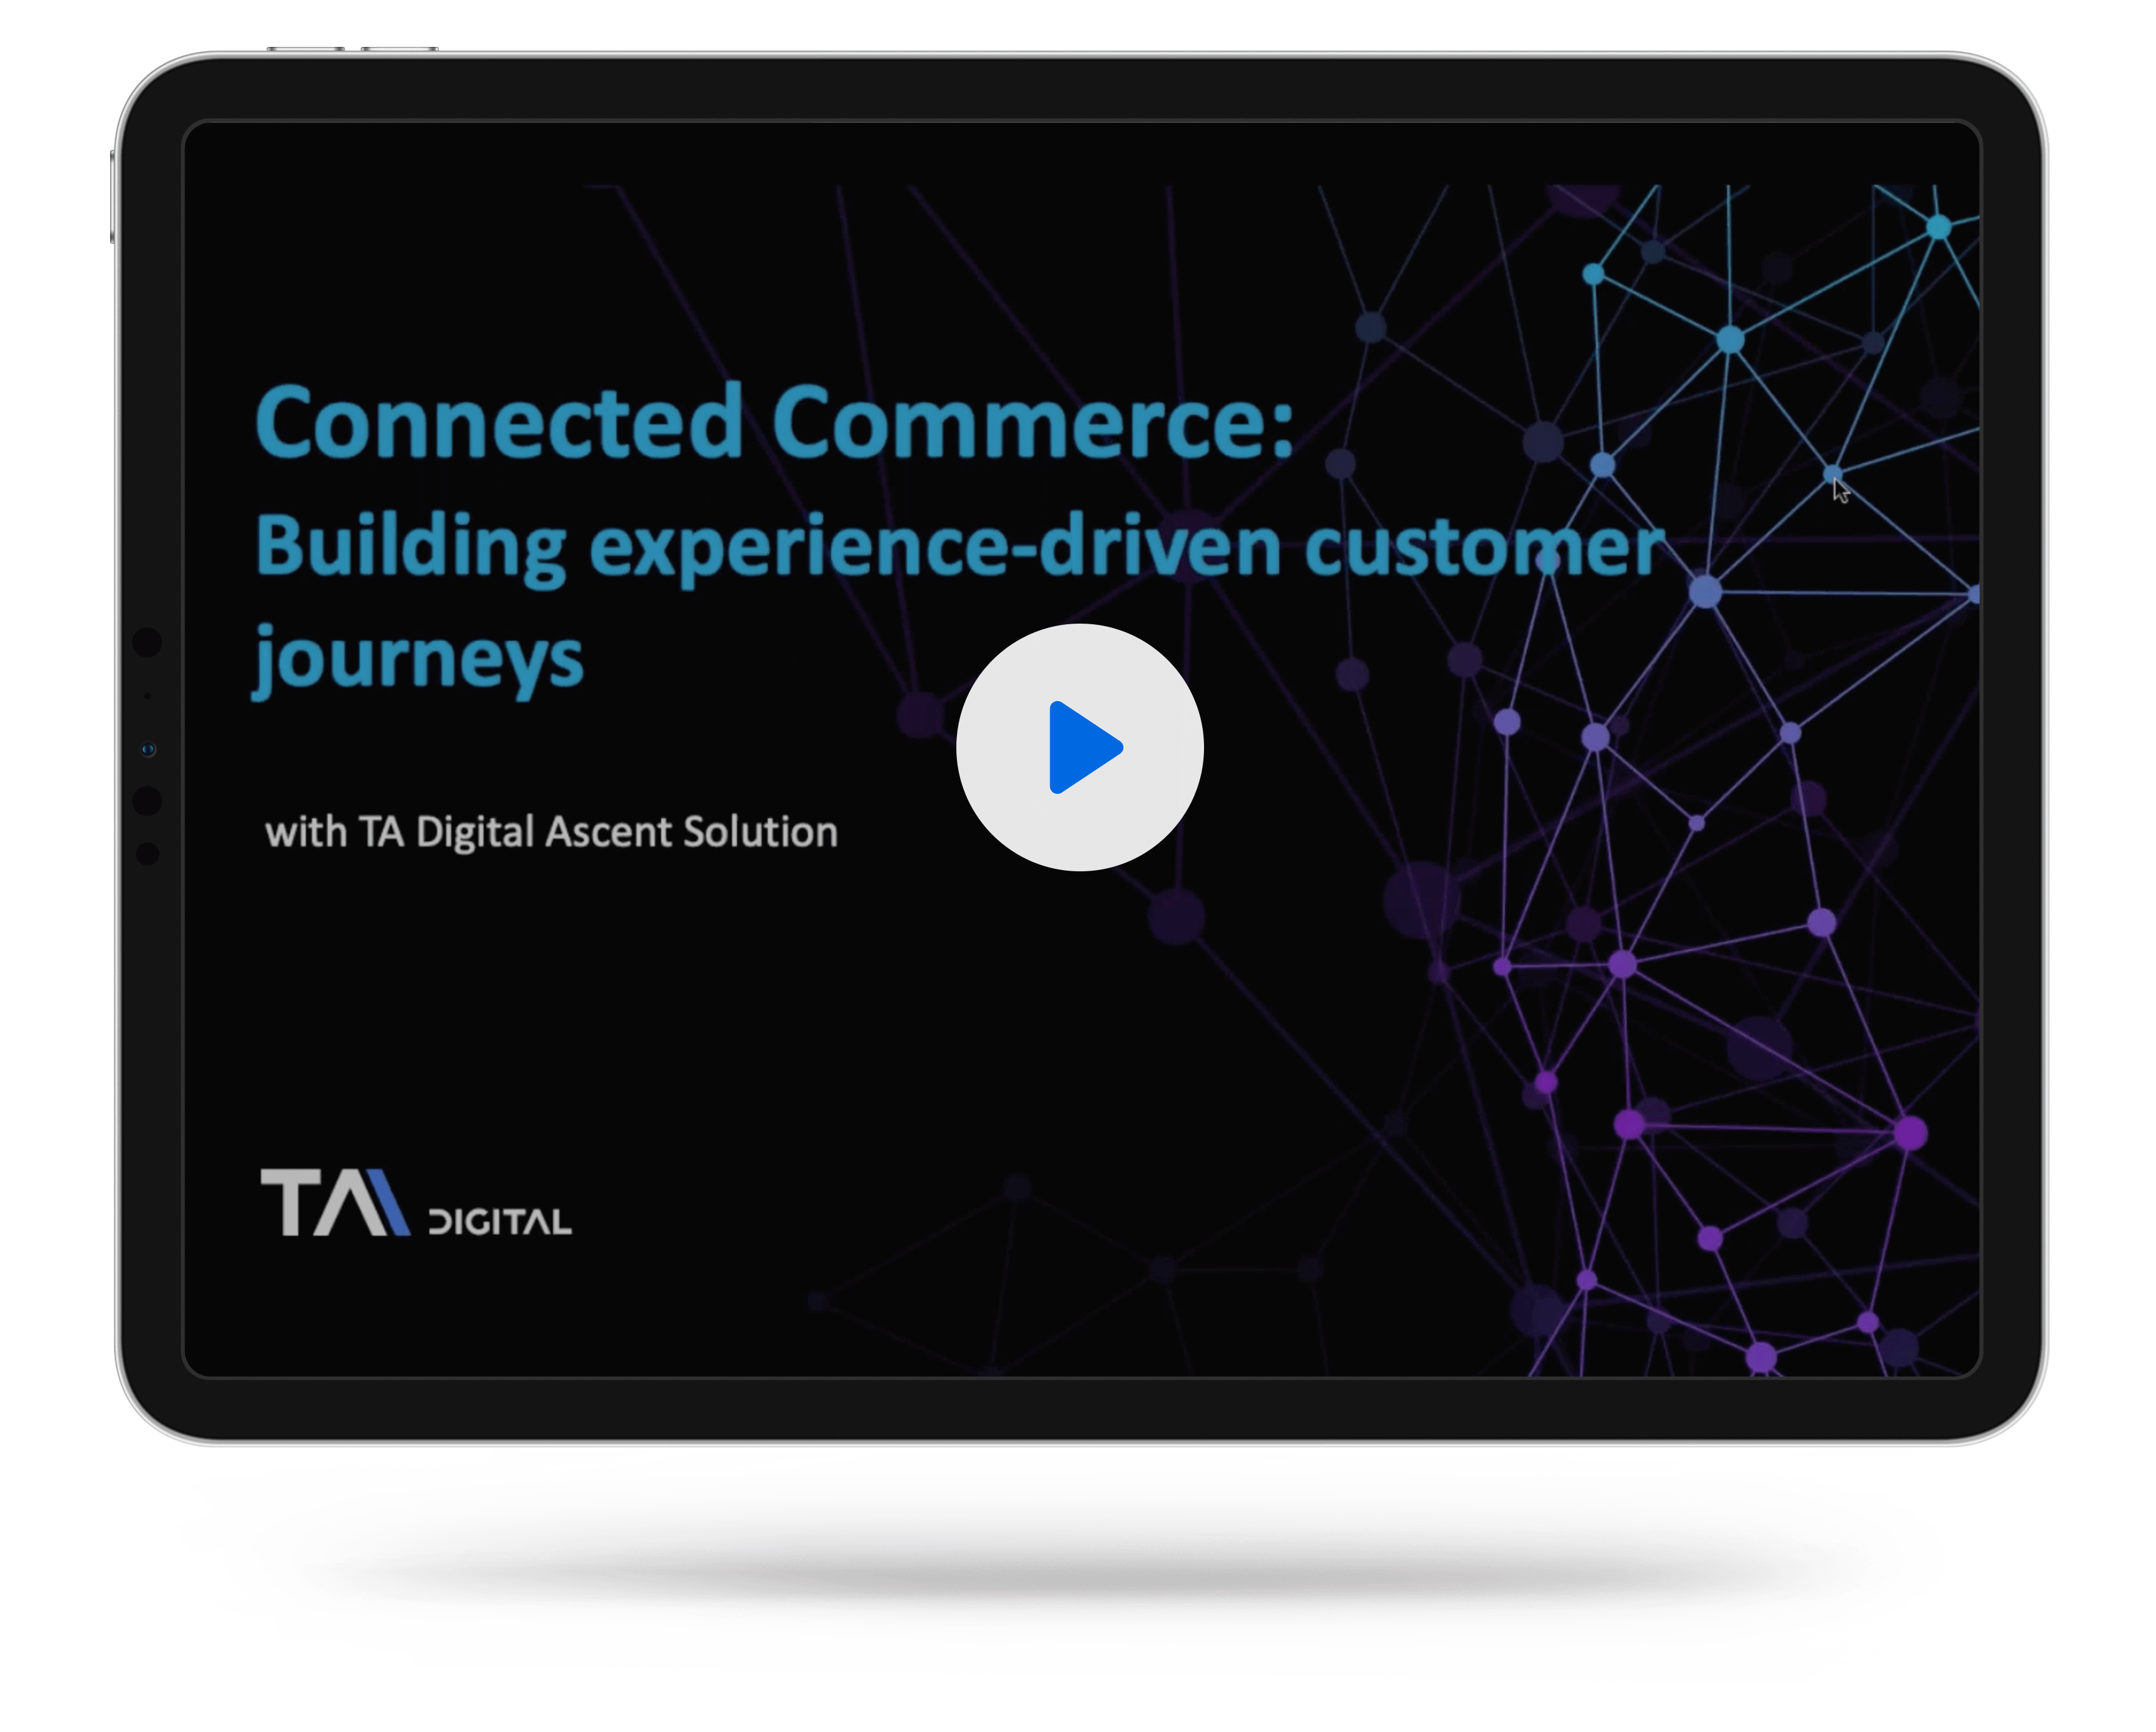 Connected Commerce: Building experience-driven customer journeys